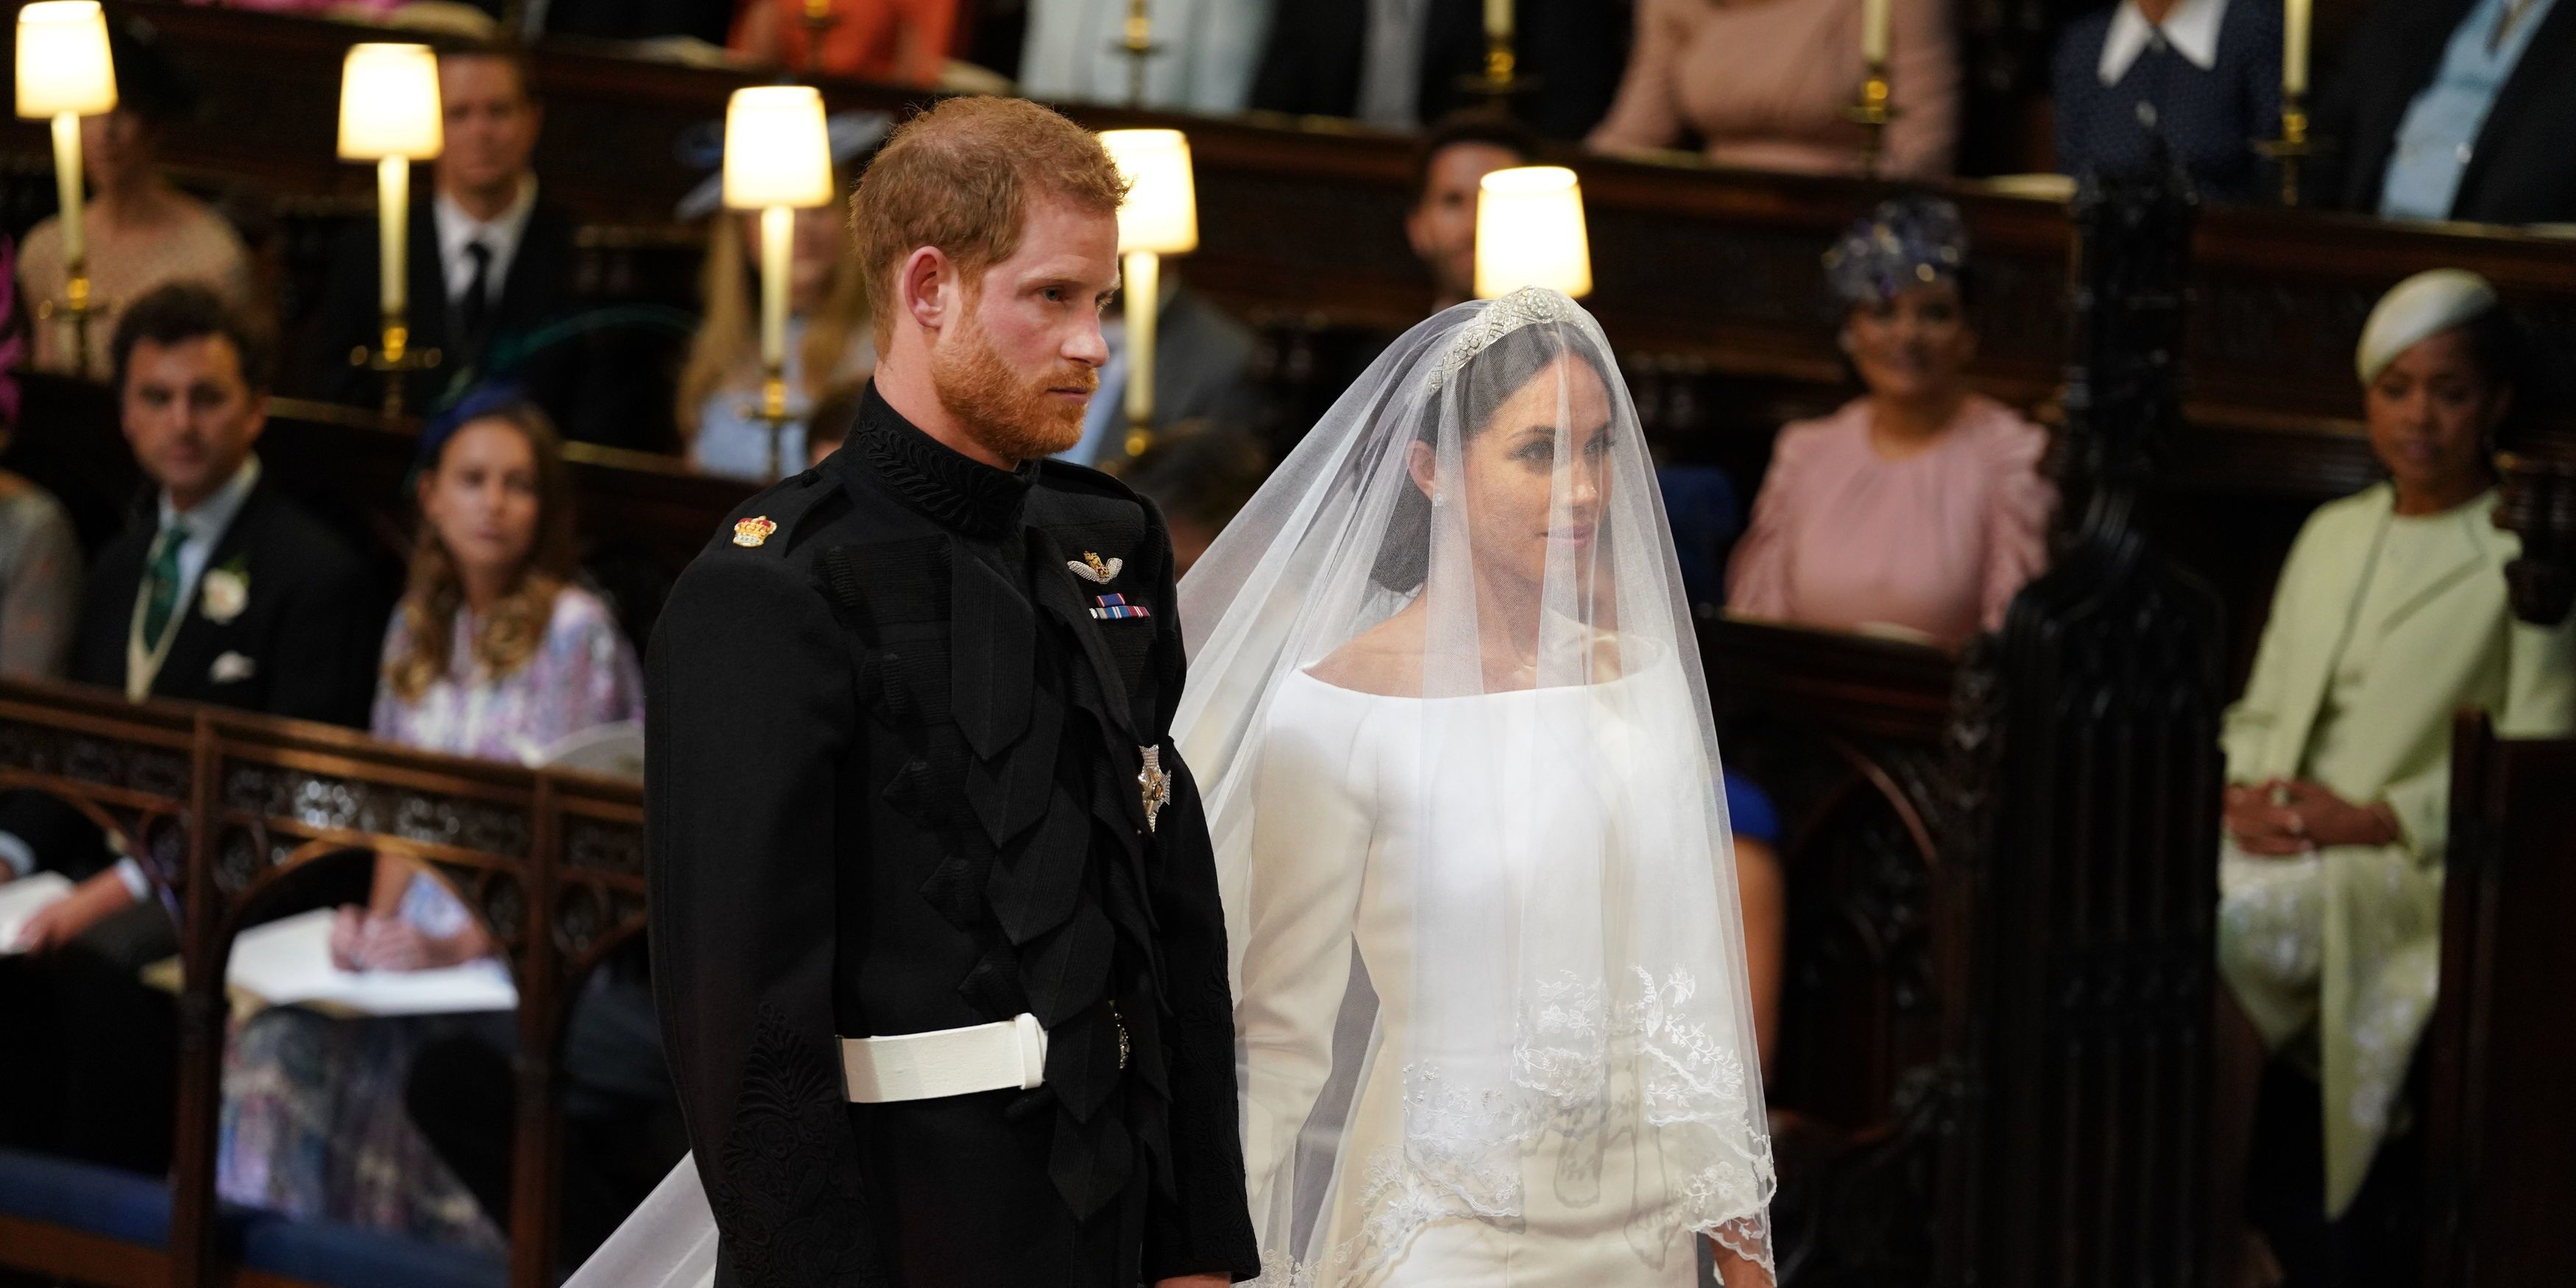 Prince Harry, Duke of Sussex (L) and US fiancee of Britain's Prince Harry Meghan Markle stand together for their wedding